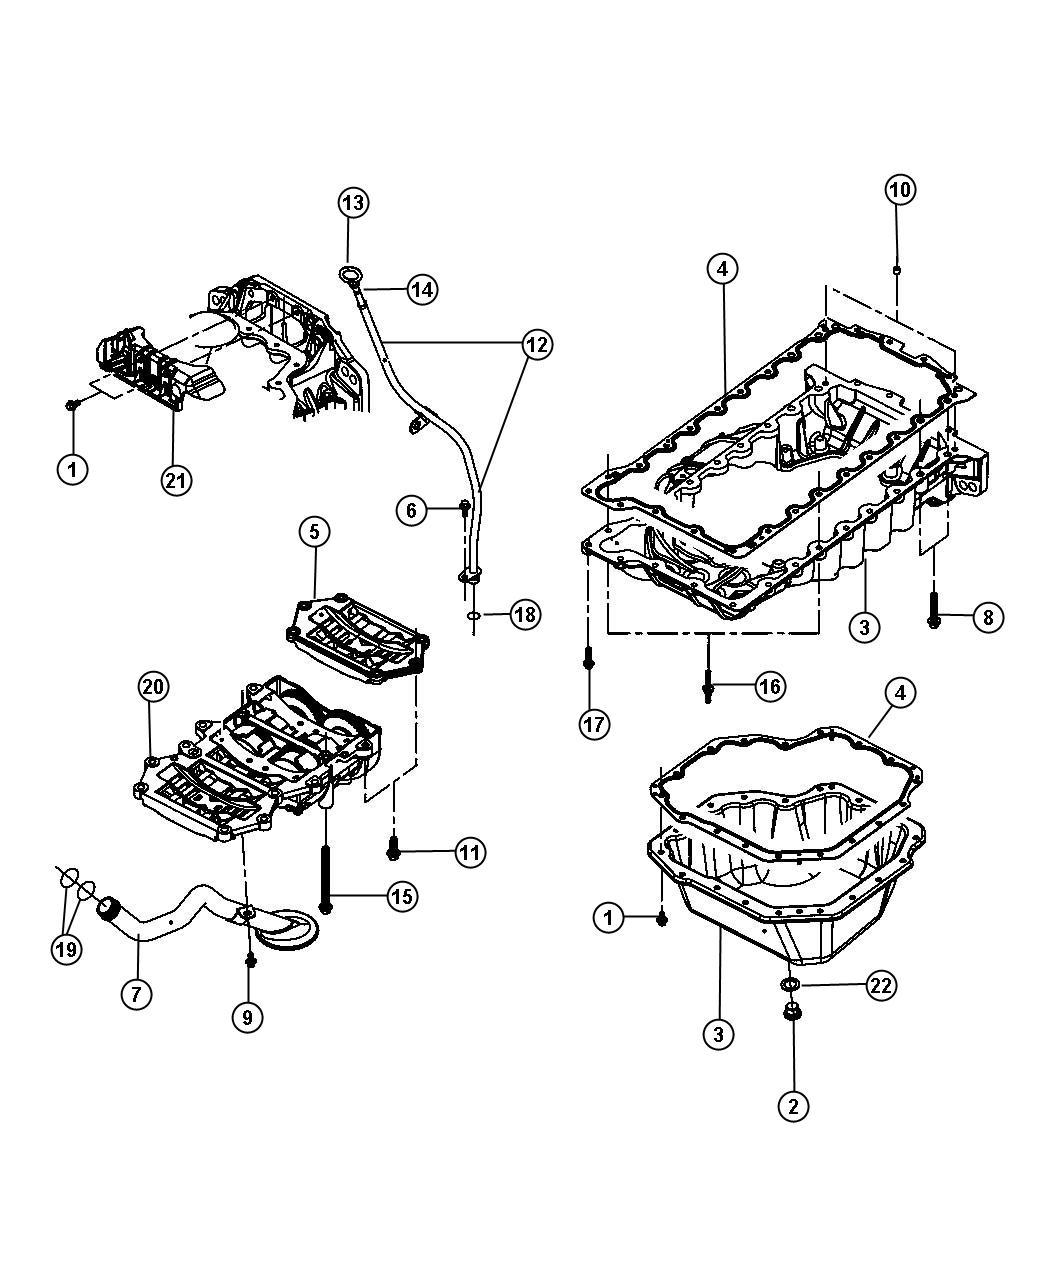 Diagram Engine Oil Pan, Engine Oil Level Indicator And Related Parts 2.8L Diesel [2.8L I4 Turbo Diesel Engine]. for your Plymouth